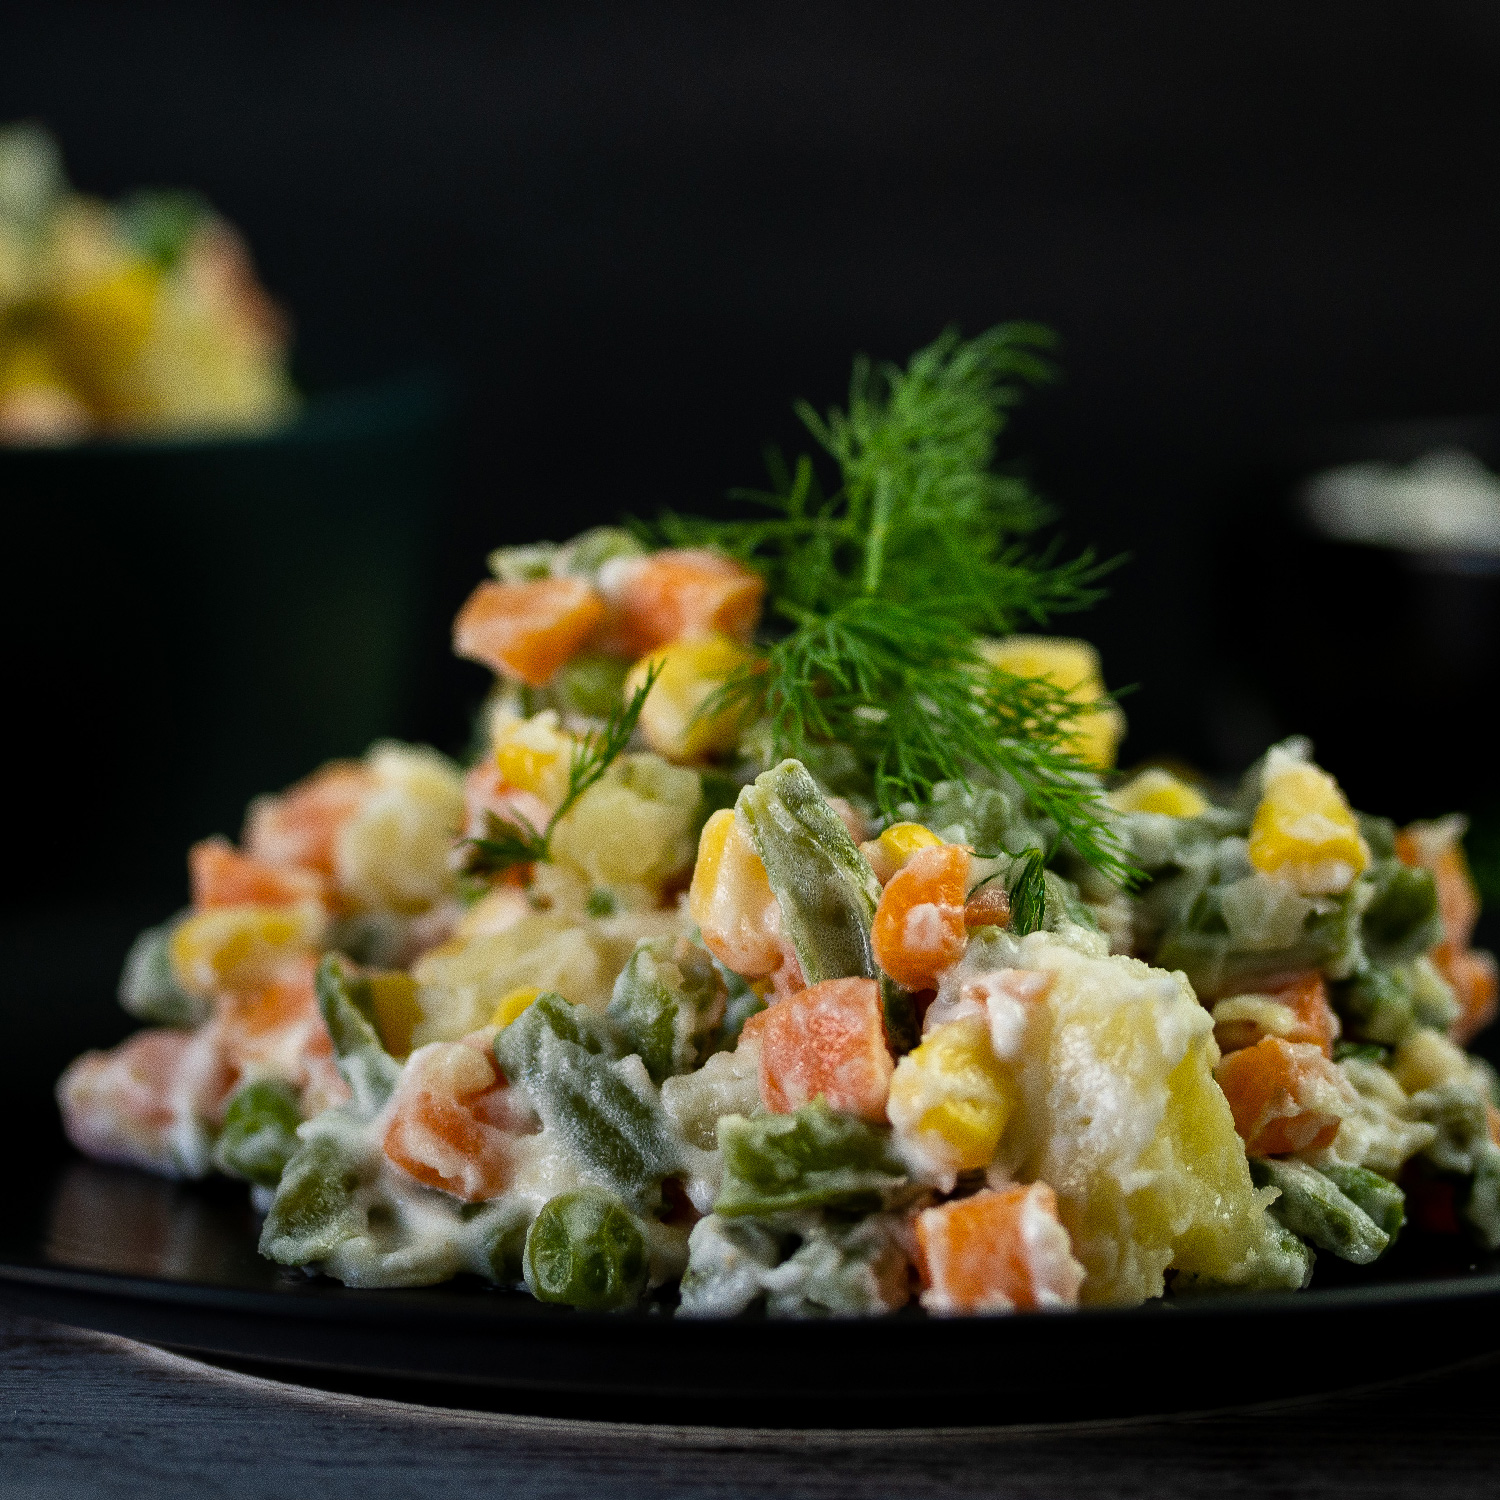 Russian Salad with Vegan Mayo